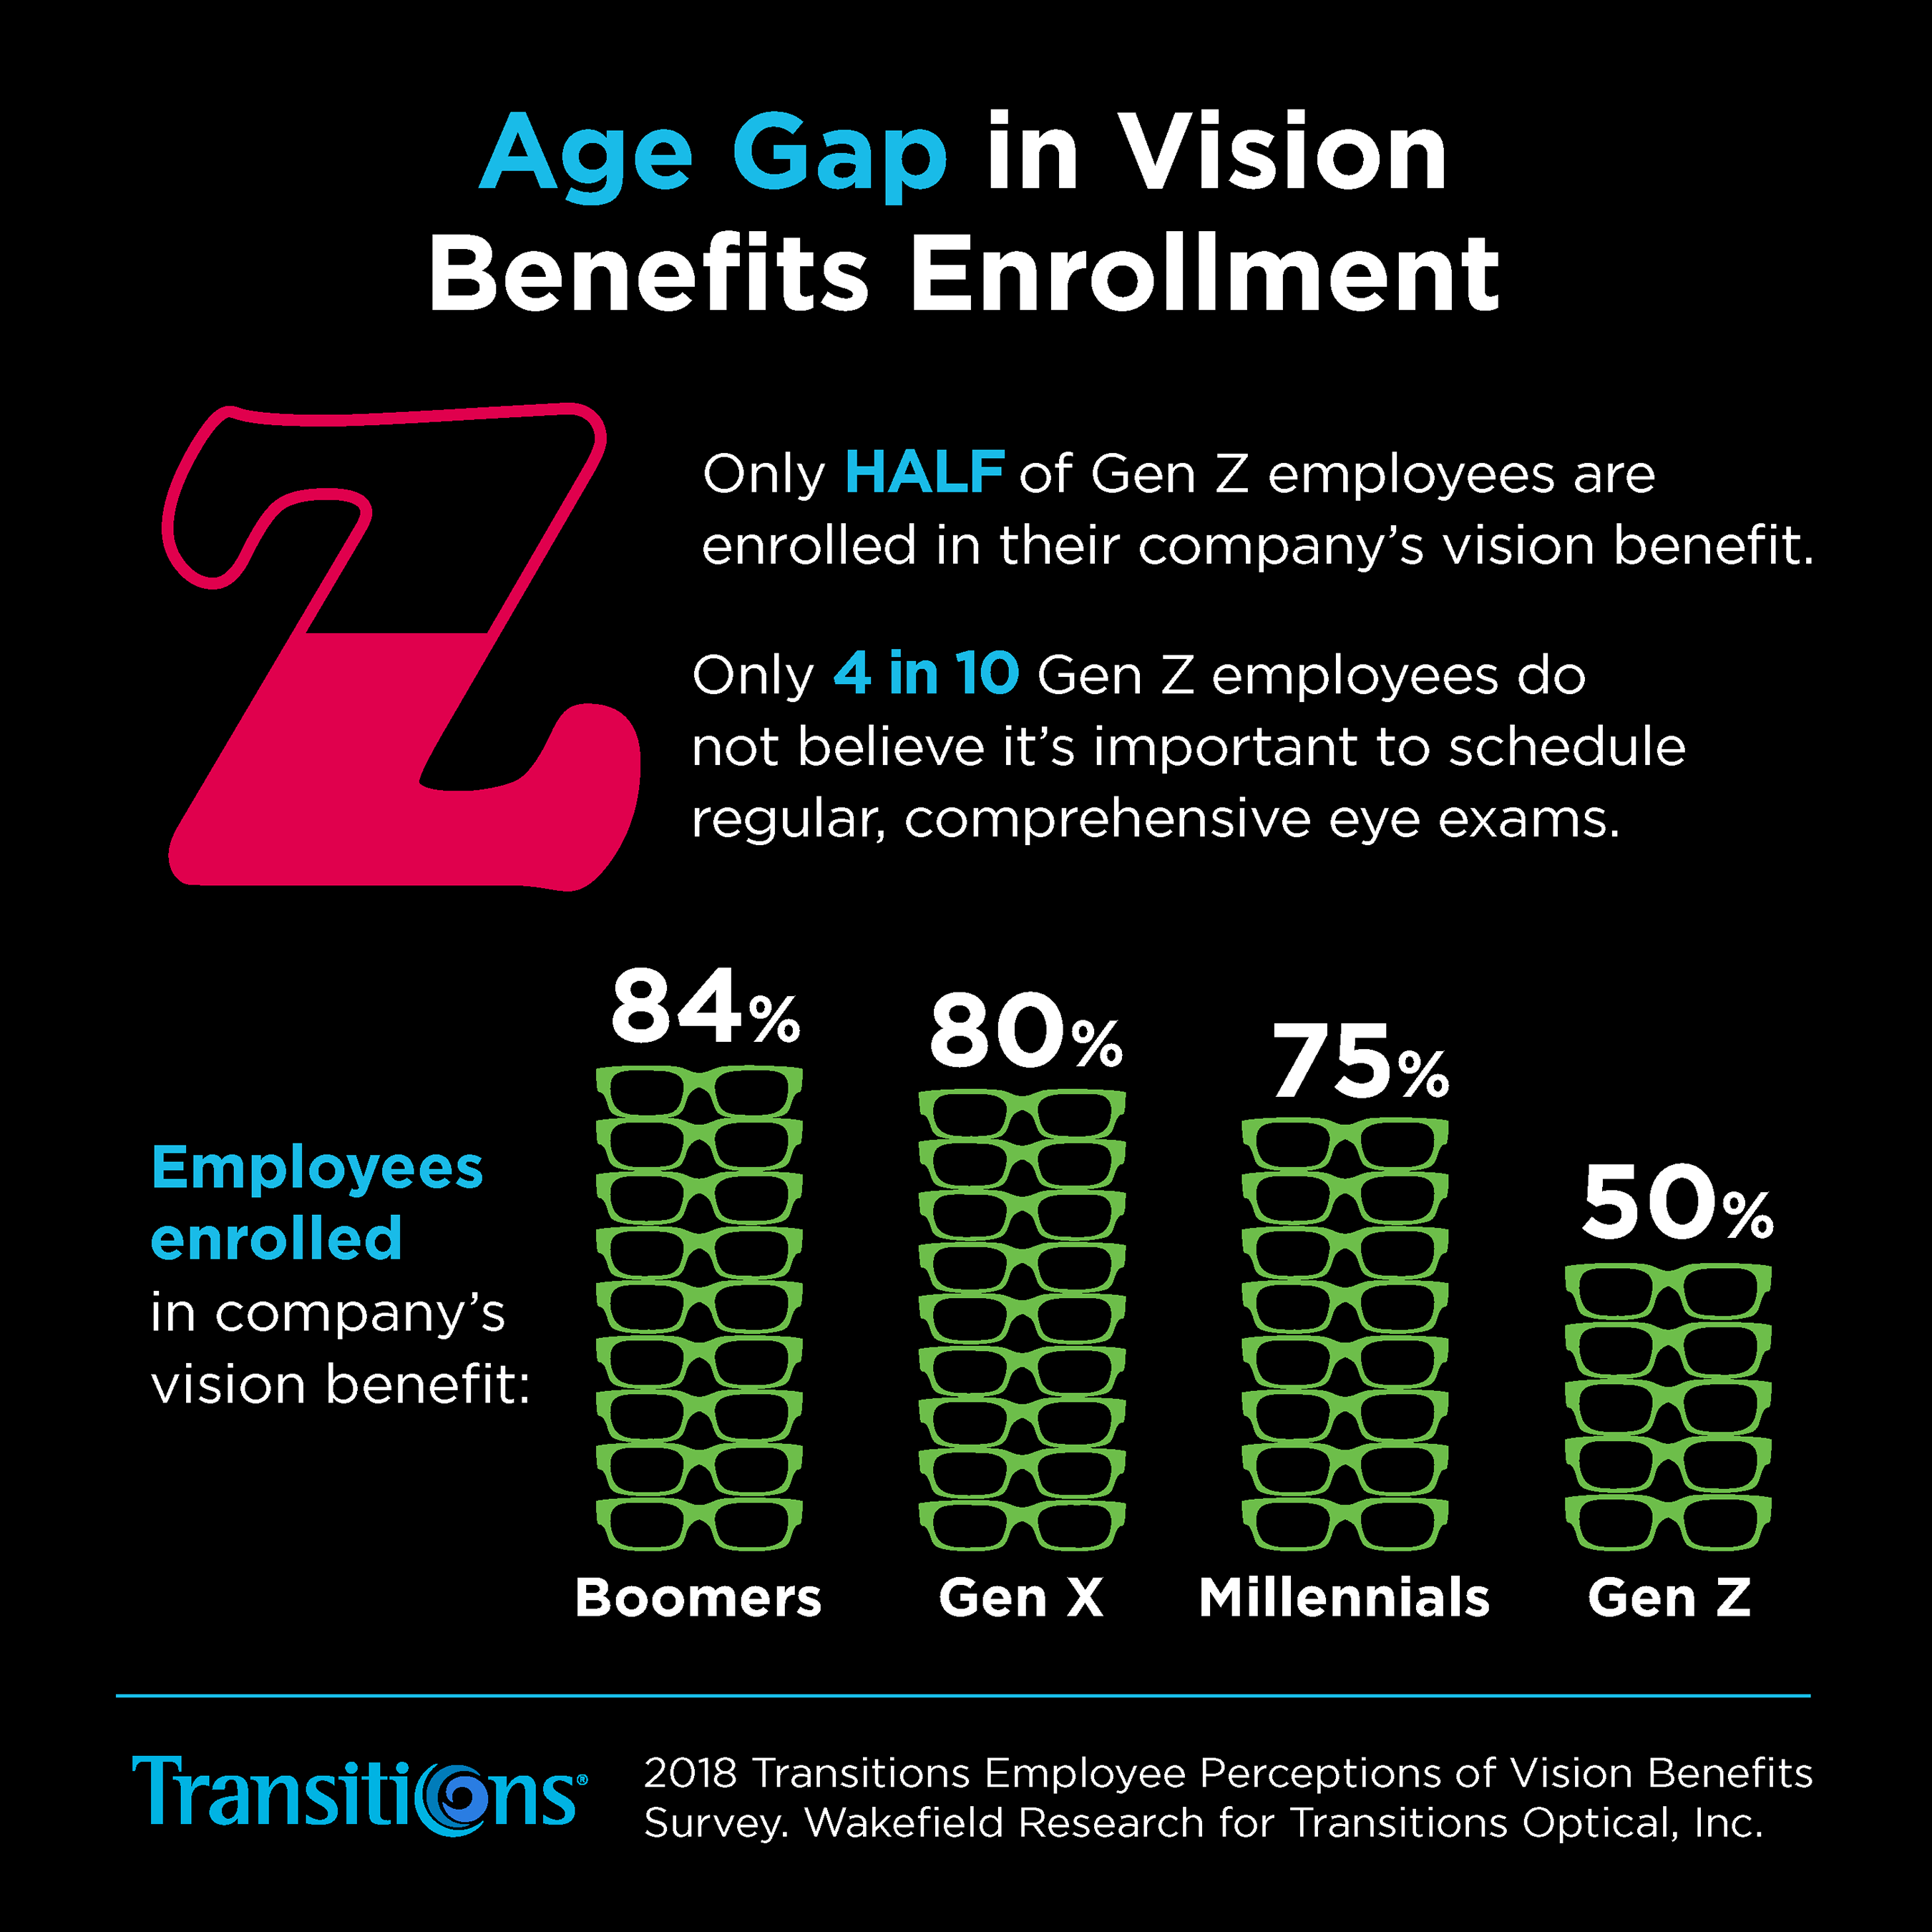 Transitions Optical Survey describes the age gap in employee vision benefits enrollment.